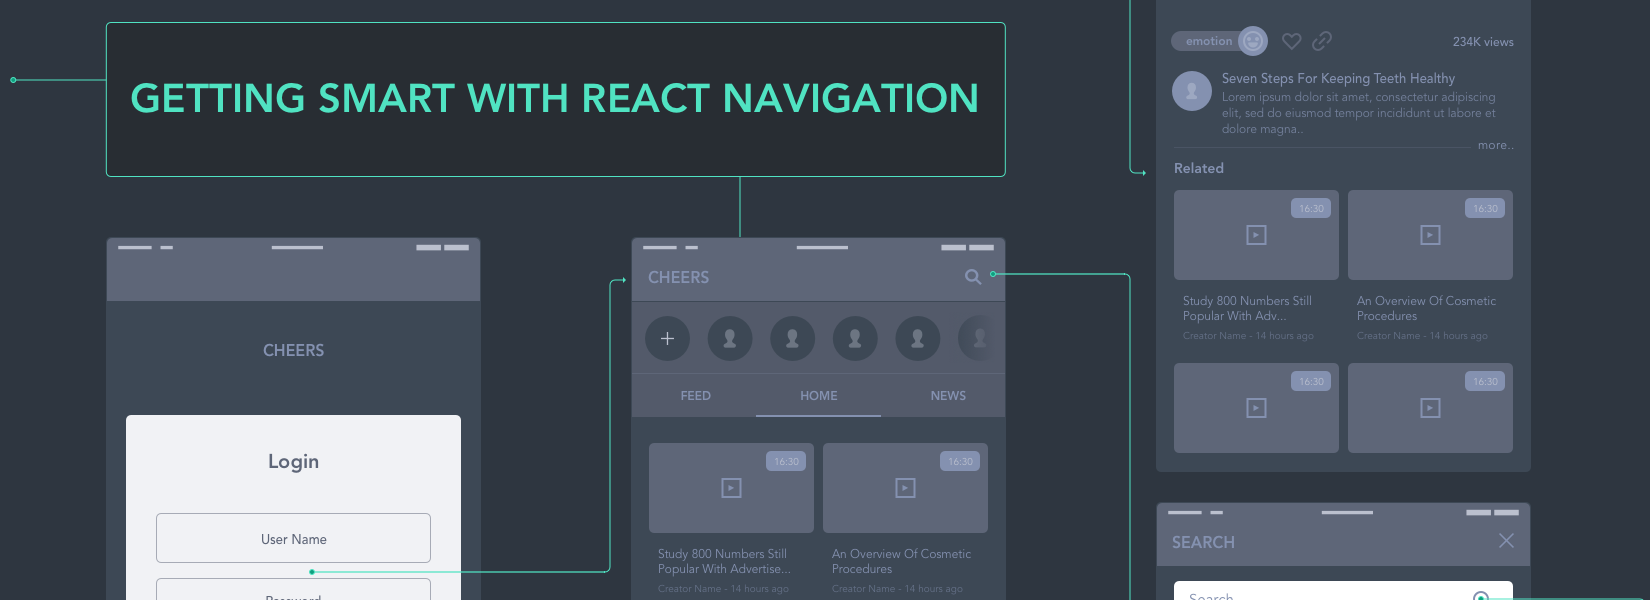 Getting smart with React Navigation